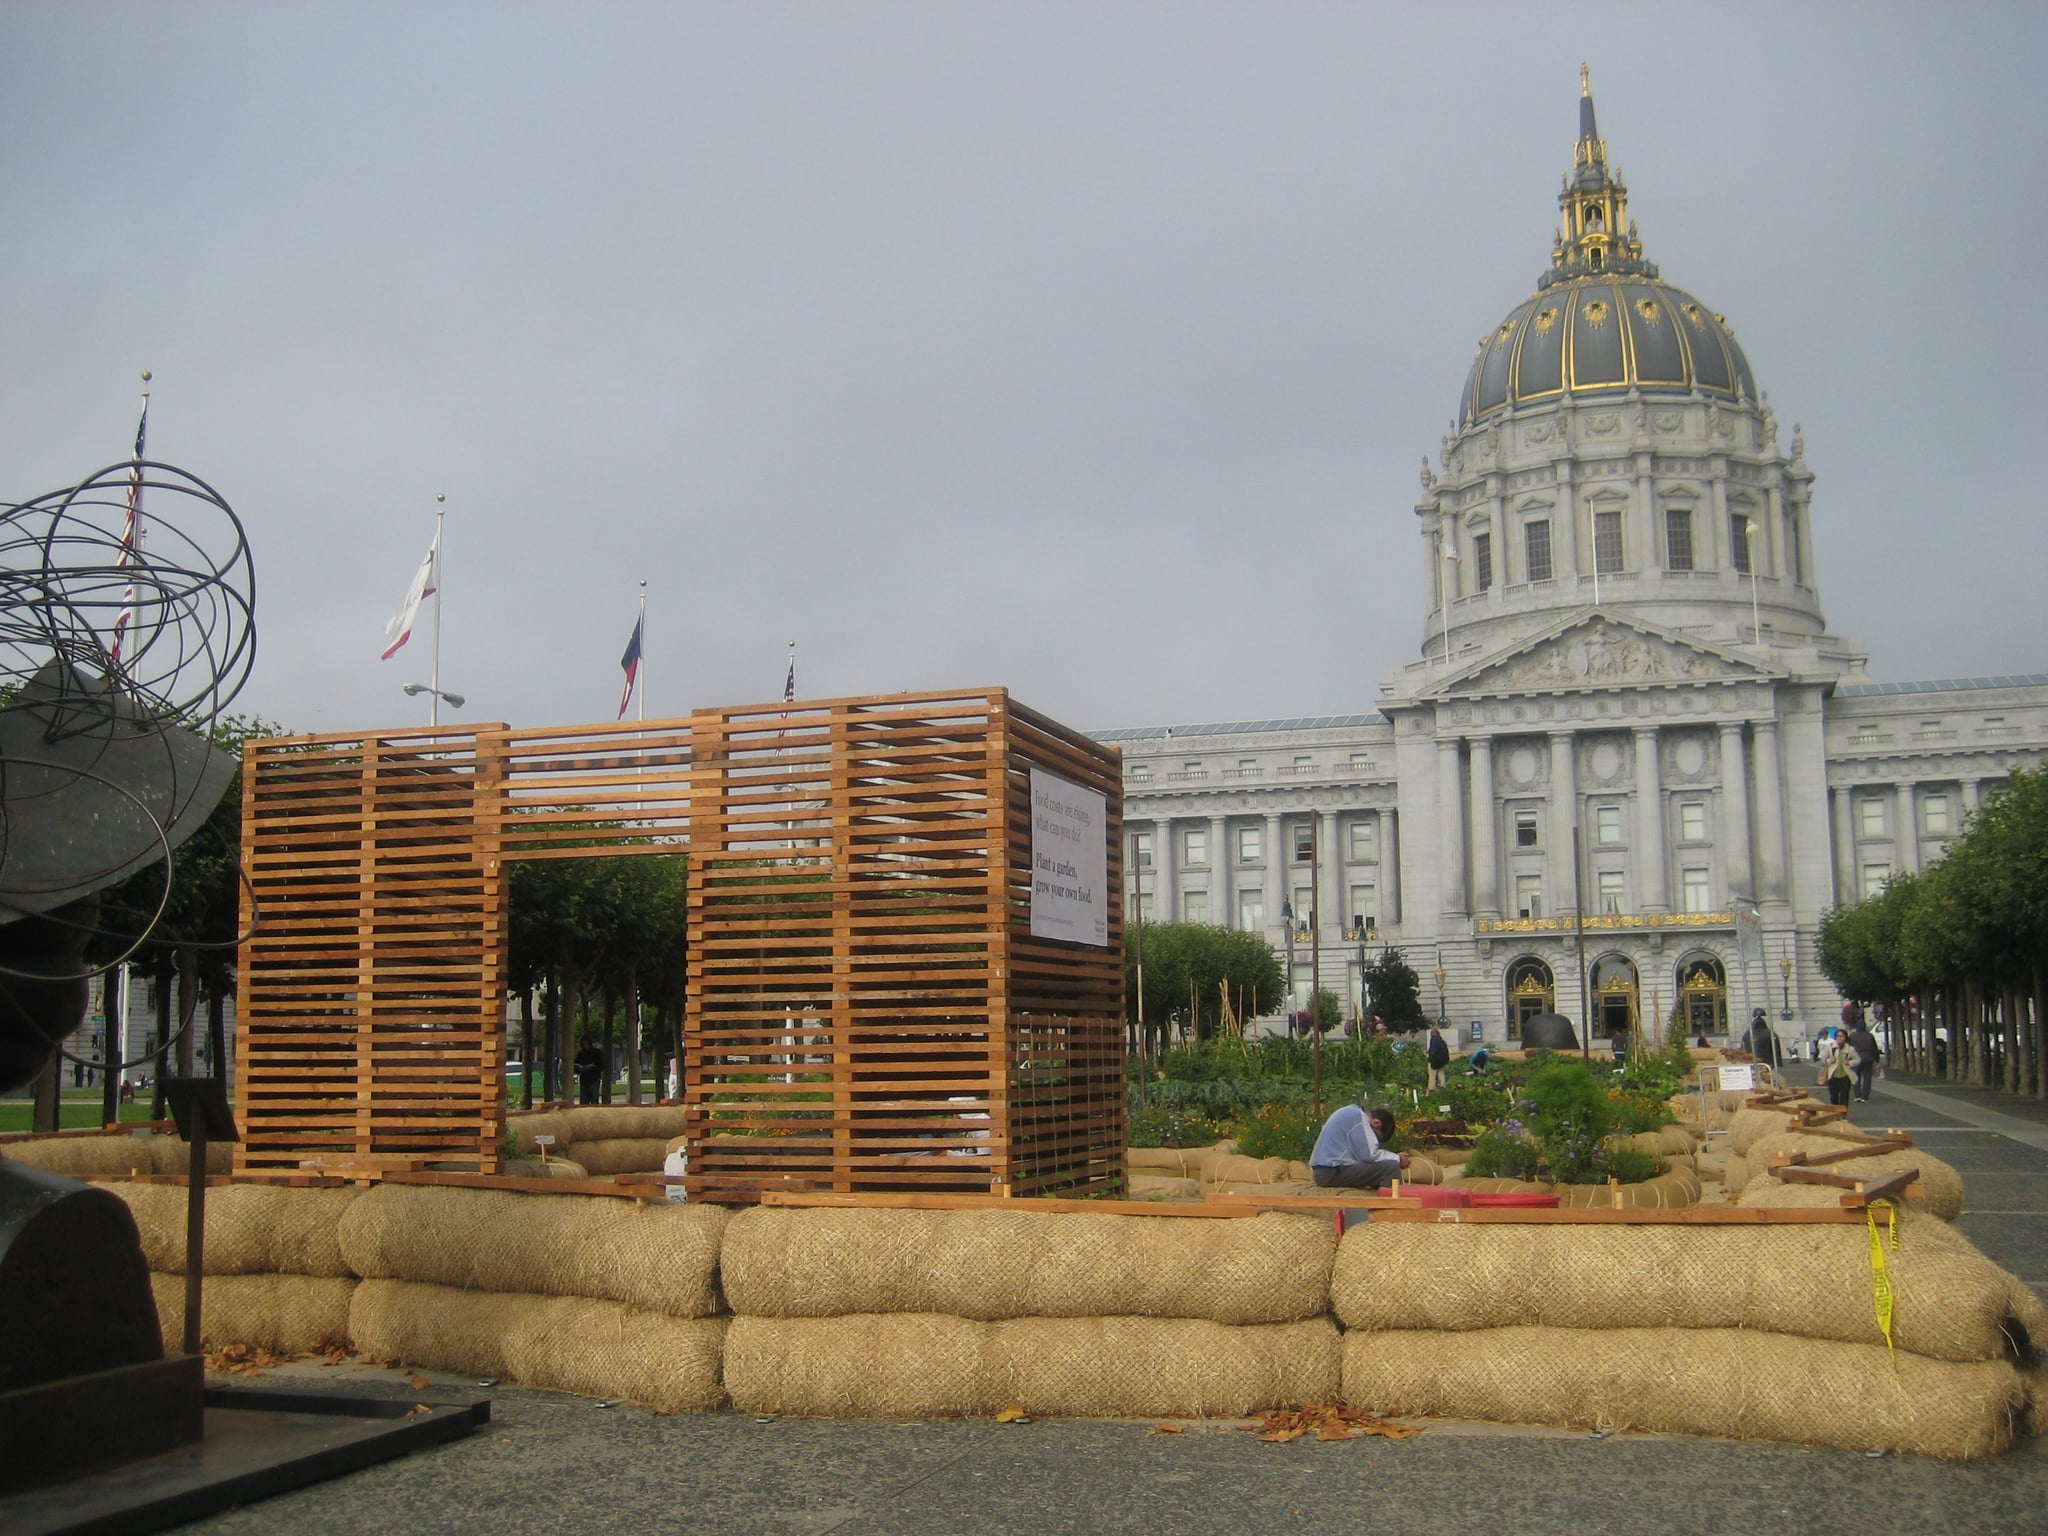 The Victory Garden is planted in front of San Francisco's City Hall.